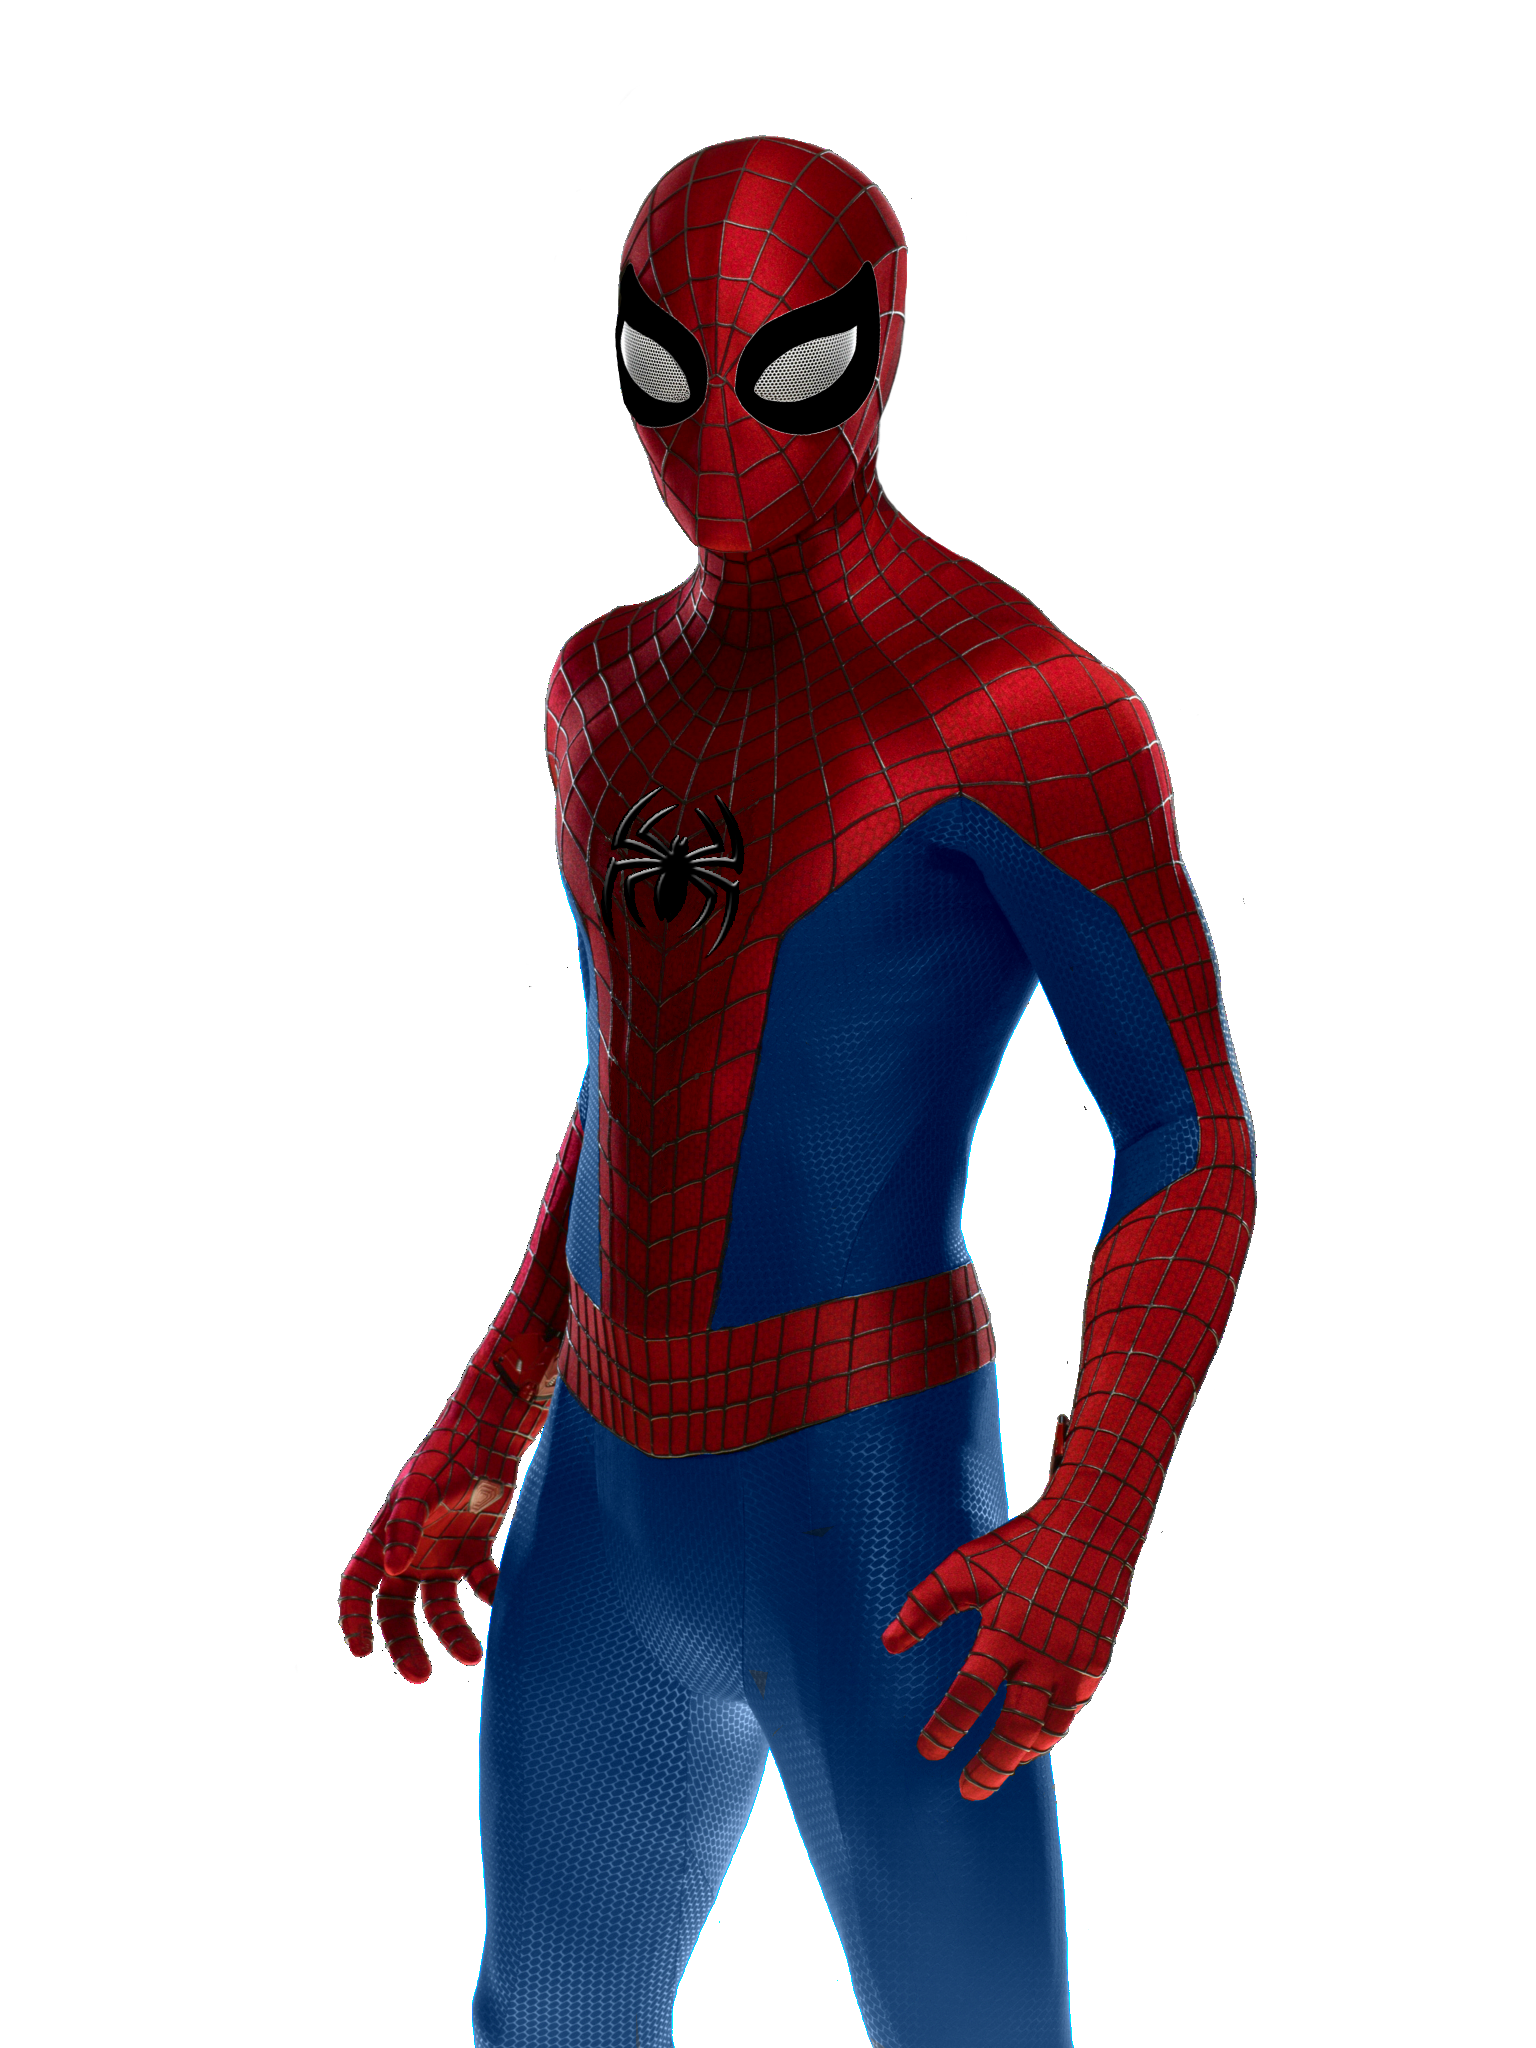 Amazing SpiderMan PNG Image - PurePNG | Free transparent CC0 PNG Image Library  sc 1 st  PurePNG & Amazing SpiderMan PNG Image - PurePNG | Free transparent CC0 PNG ...